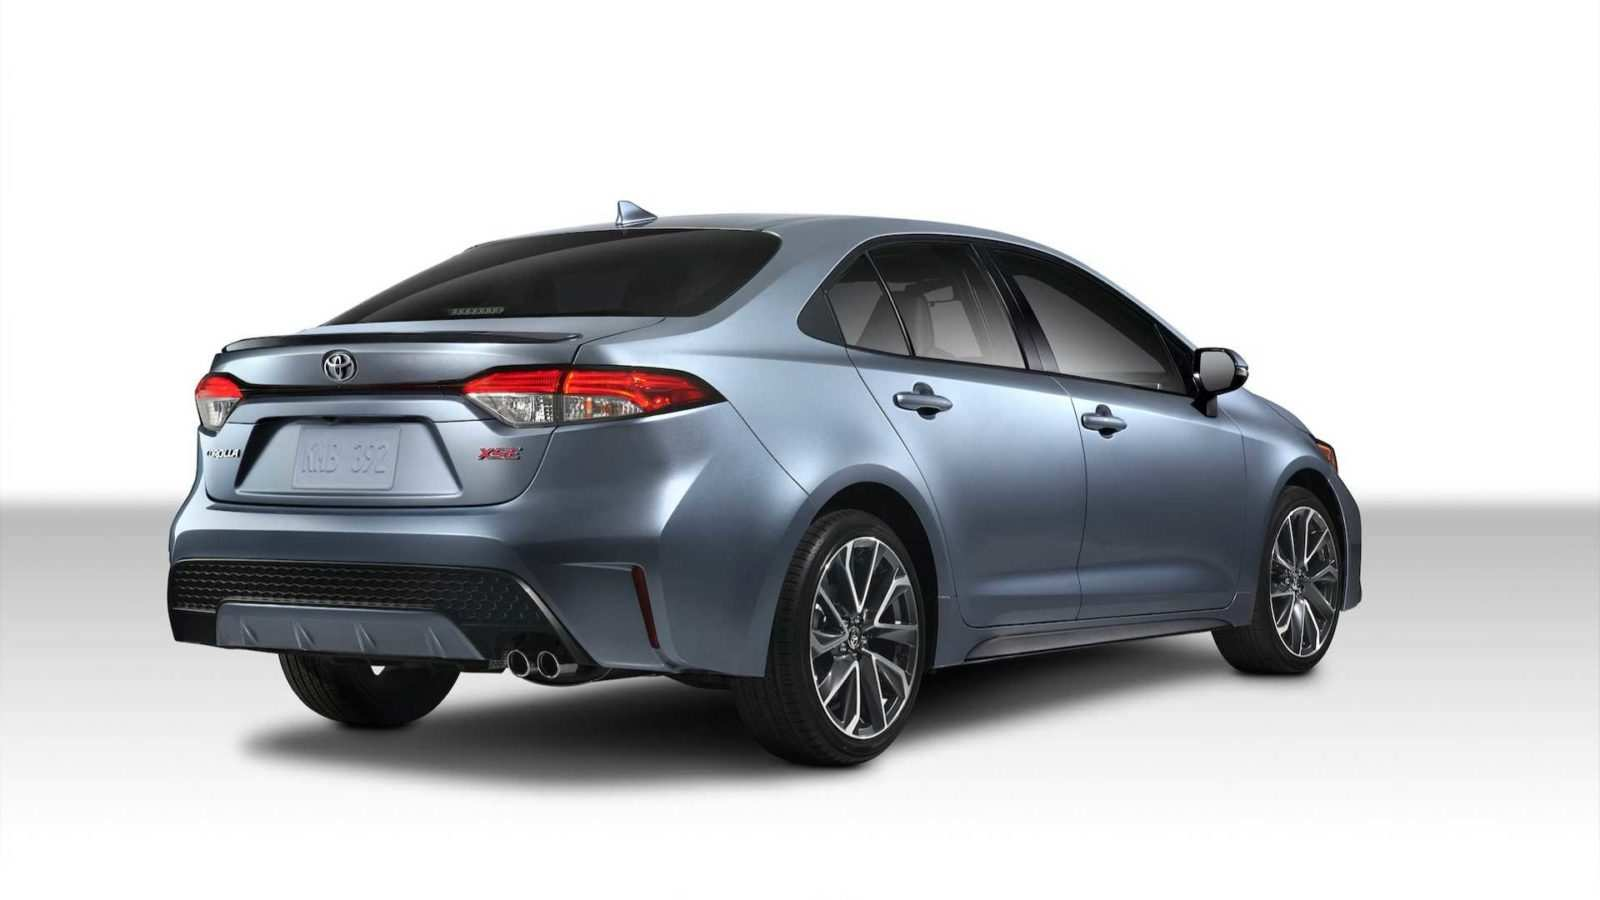 99 The Toyota Corolla 2020 Model In Pakistan Prices